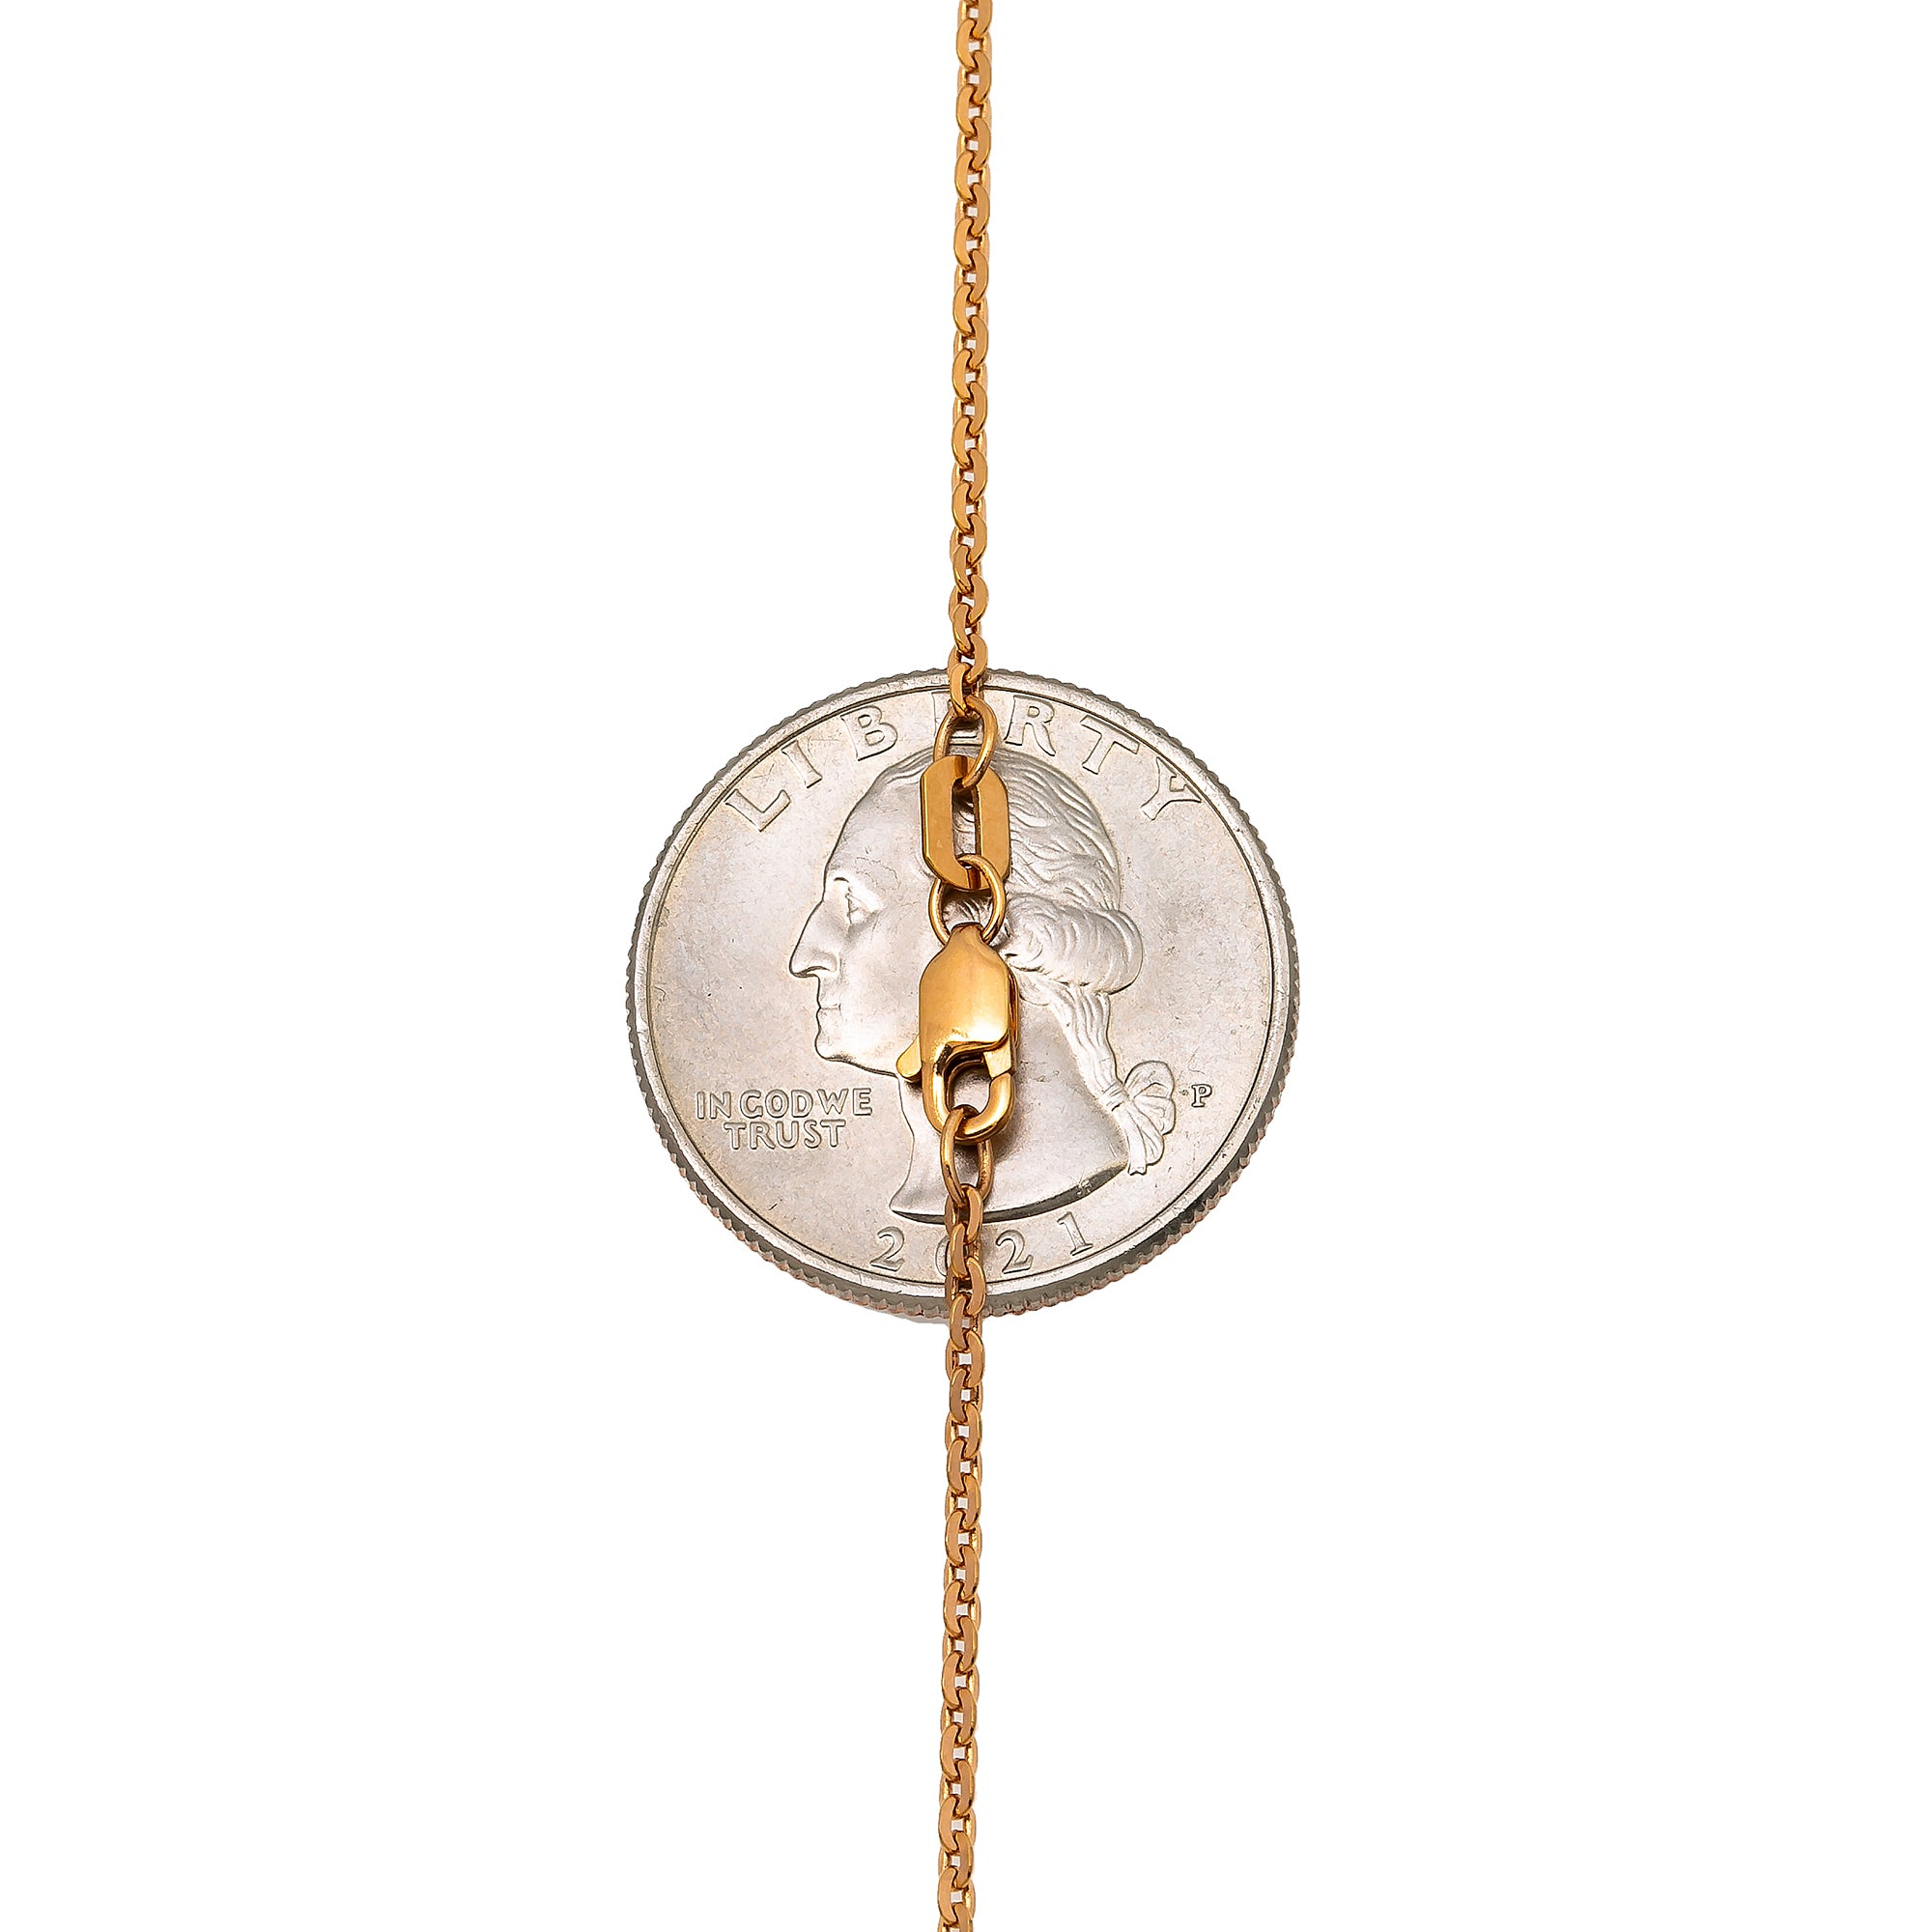 Rolex Oyster Perpetual 67480 31MM Black Dial With Stainless Steel Jubilee Bracelet